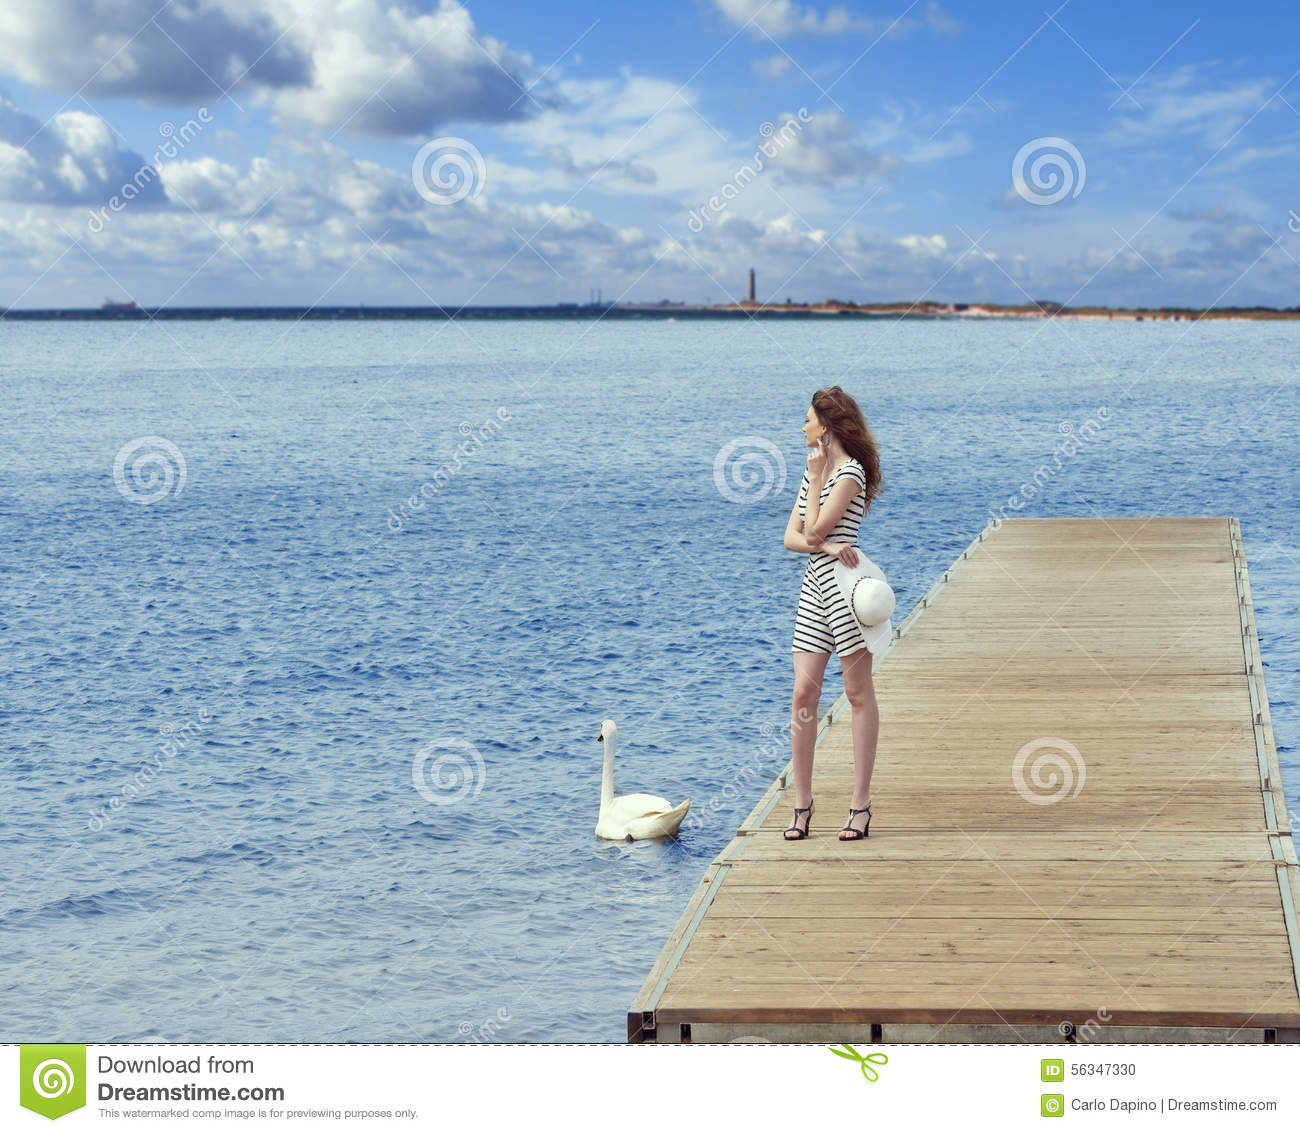 Girl on pier with swan